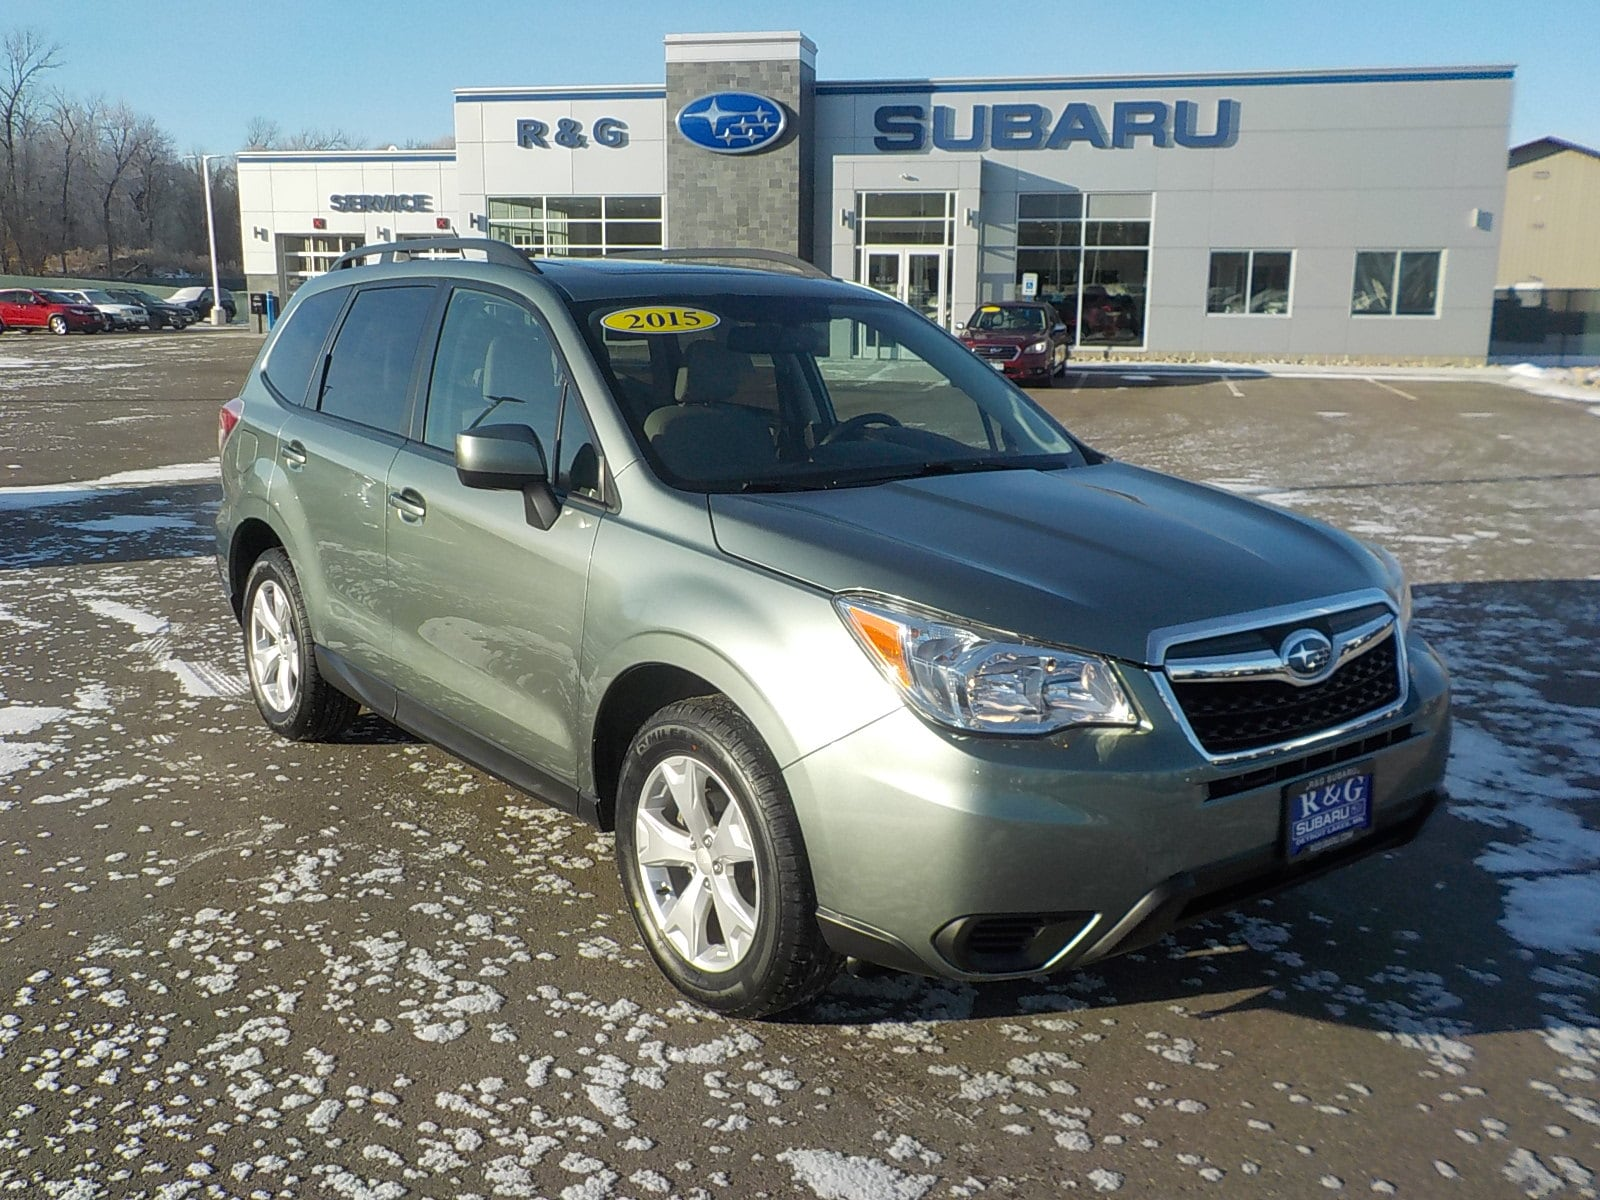 2015 Subaru Forester 2.5i Premium, New Tires, Remote Start, Local Trade SUV